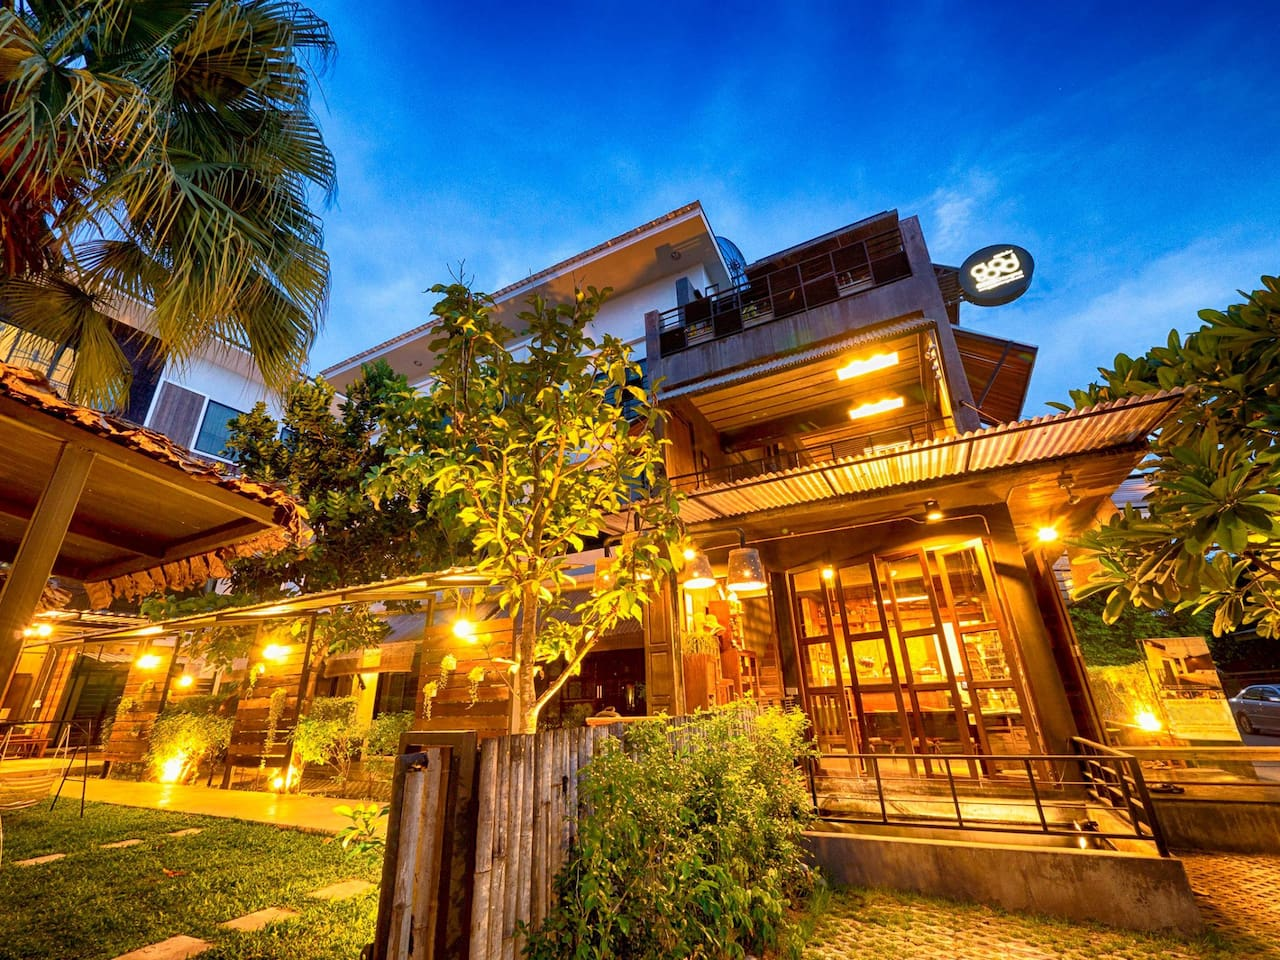 Staying at the GORD CHIANGMAI, every touch of happiness in Chiangmai.